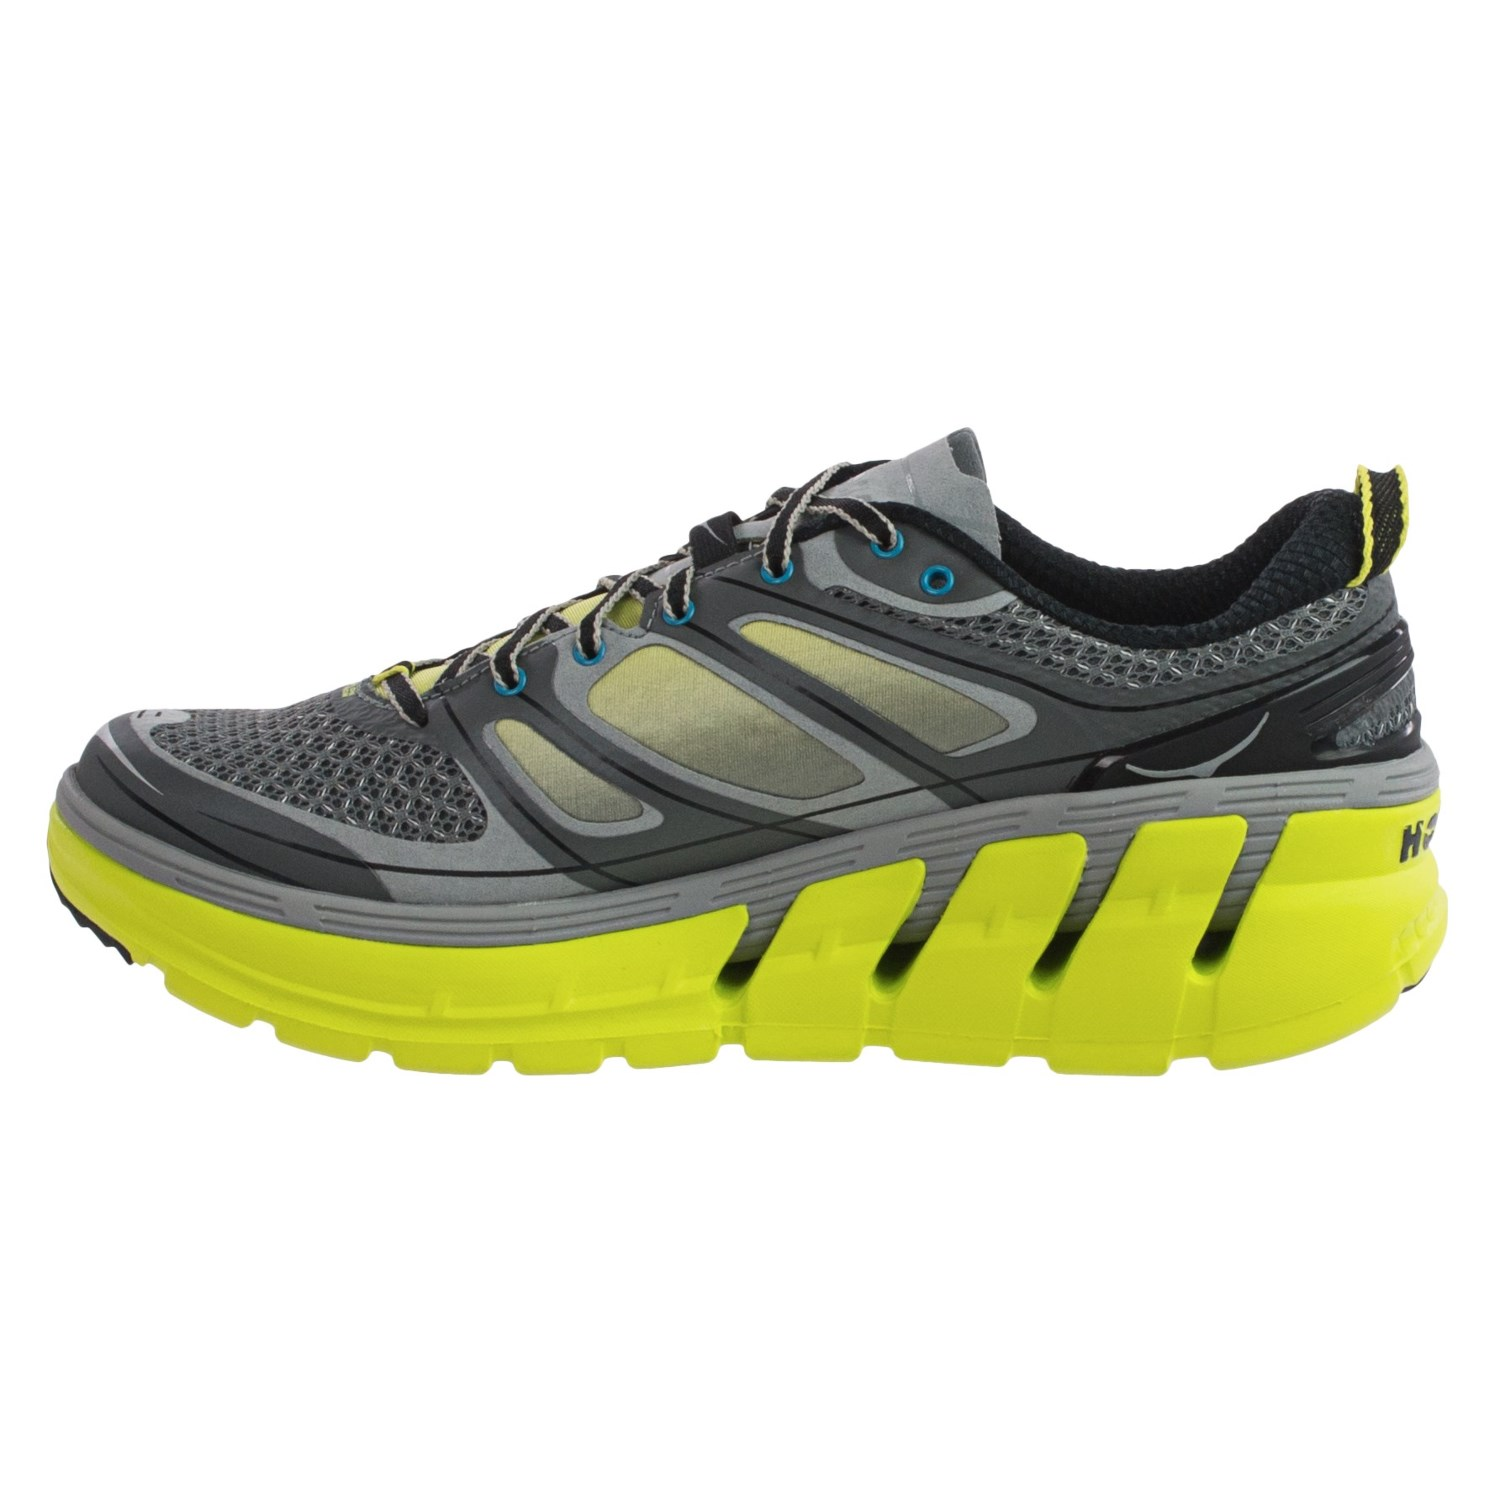 Hoka Running Shoes Review Conquest